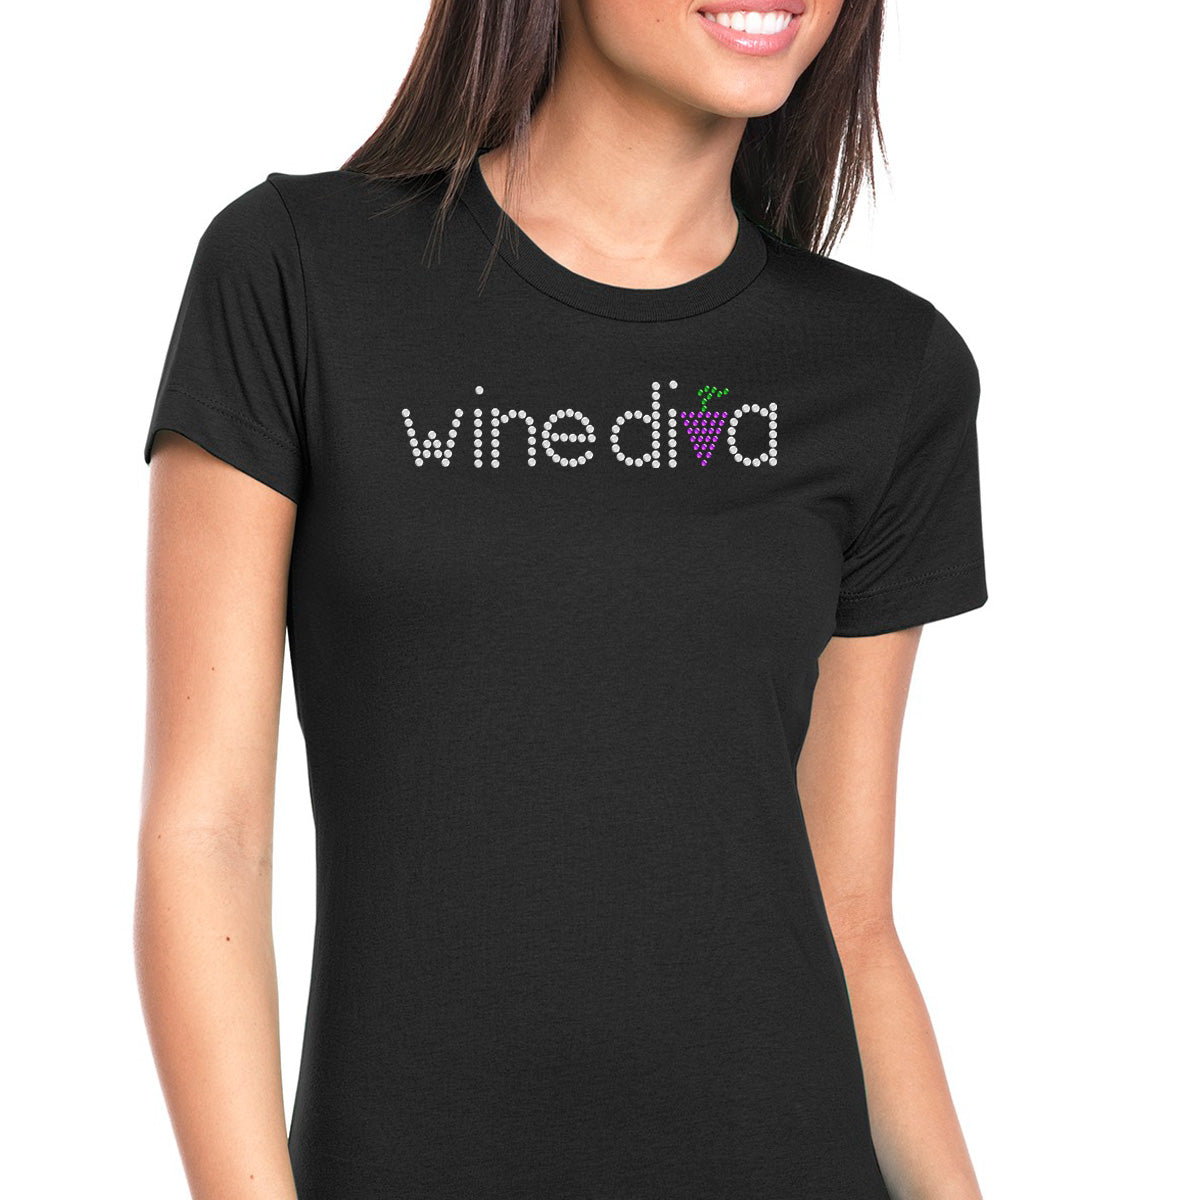 Womens T-Shirt Bling Black Fitted Tee Wine Diva Grapes